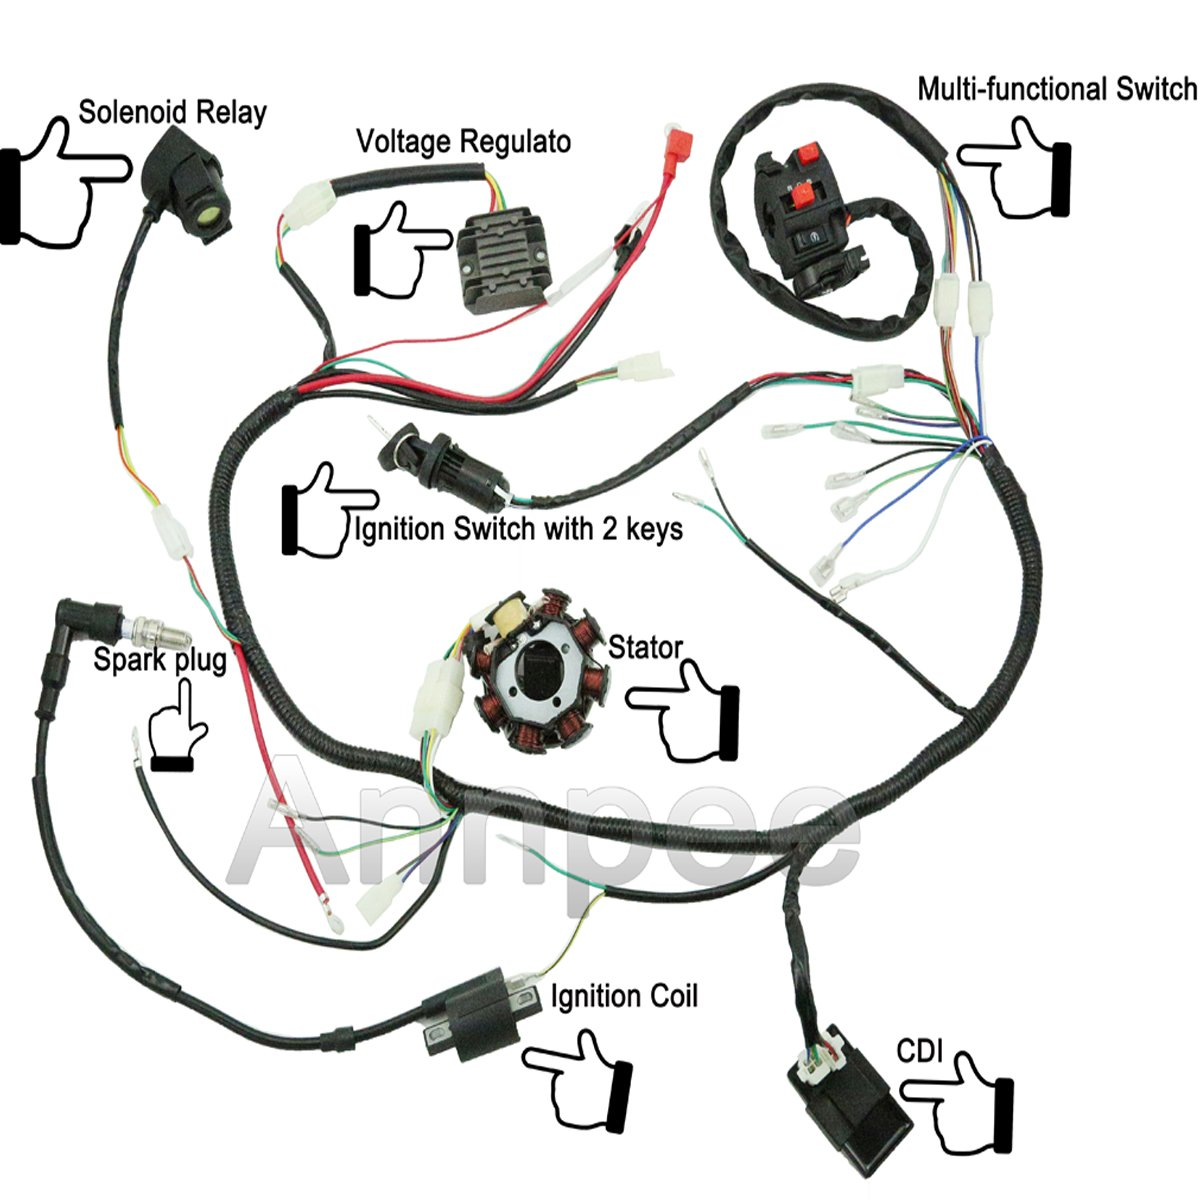 Kandi 250cc Wiring Harness Download Diagram Rh M36 Engineering Year Of Flora Be: Spyder Headlight Wiring Diagram 2006 Nissan Pathfinder At Chusao.net